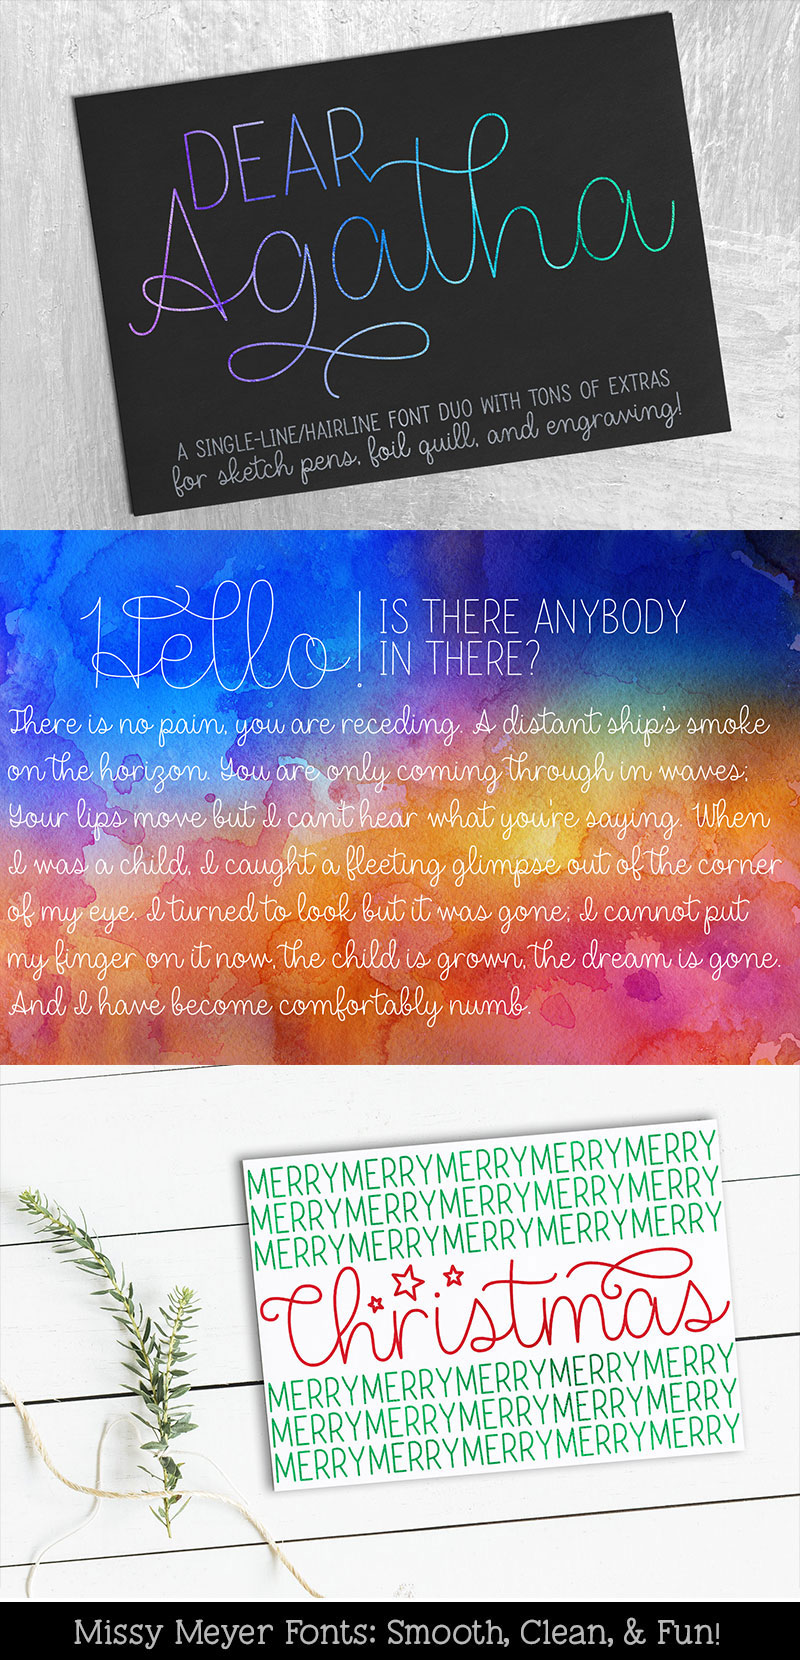 Dear Agatha - a single-line hairline pen & quill font duo! example image 8